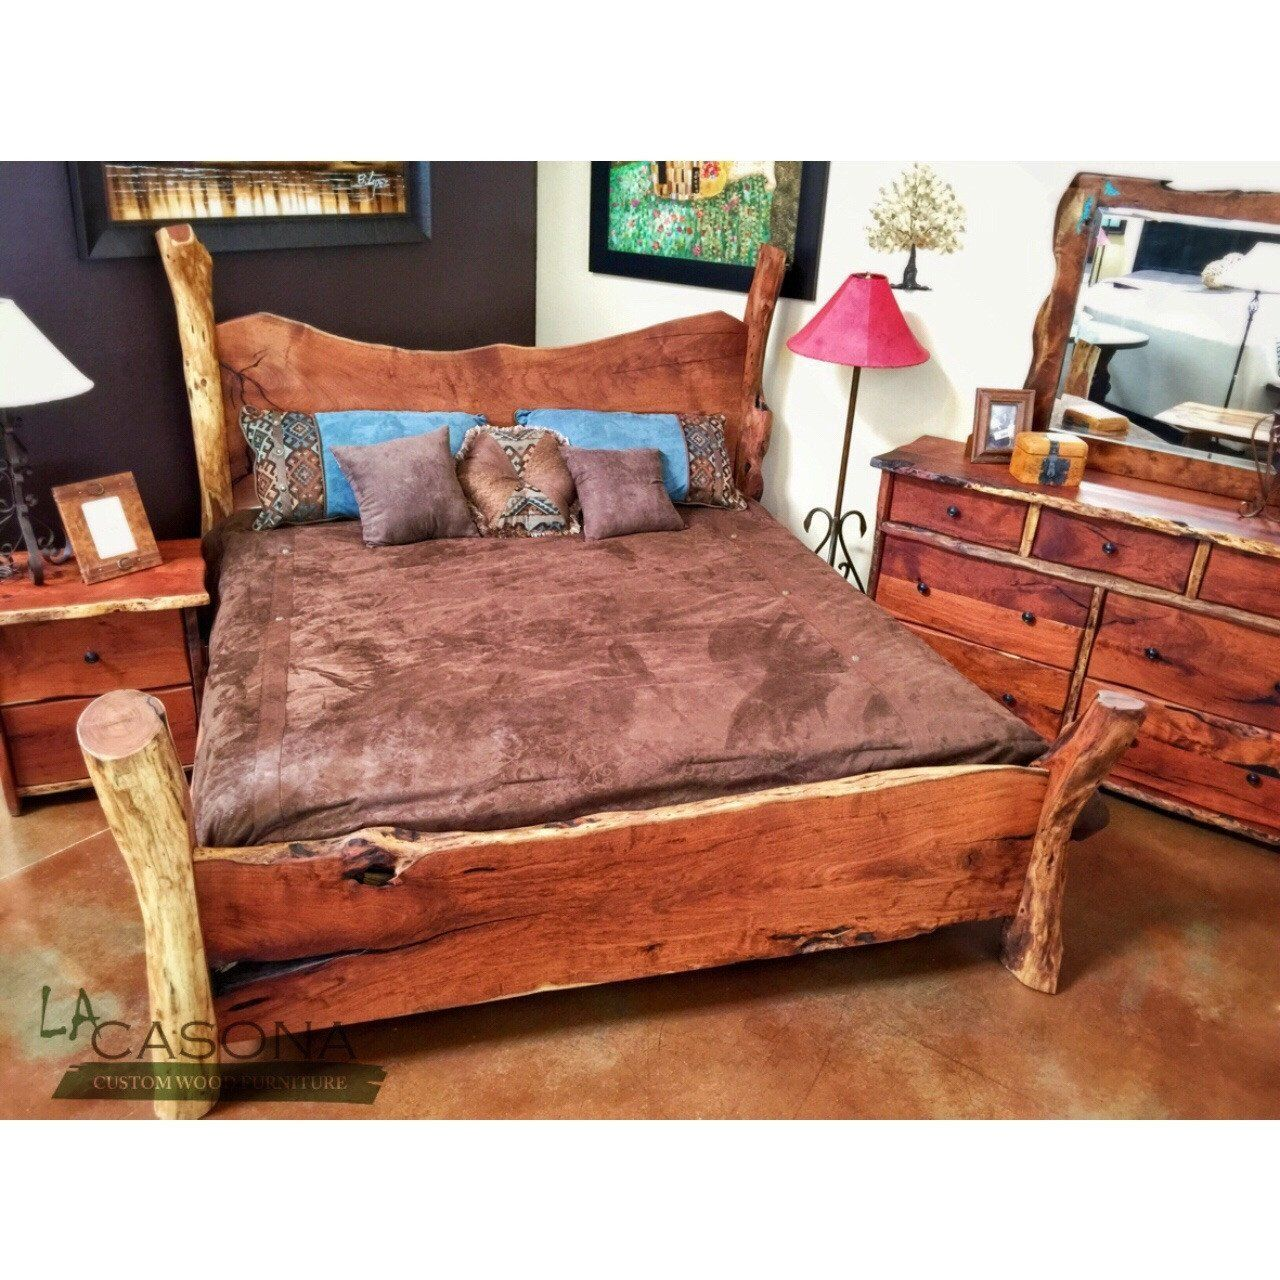 Live edge wood slab bed rustic design that fits well with any